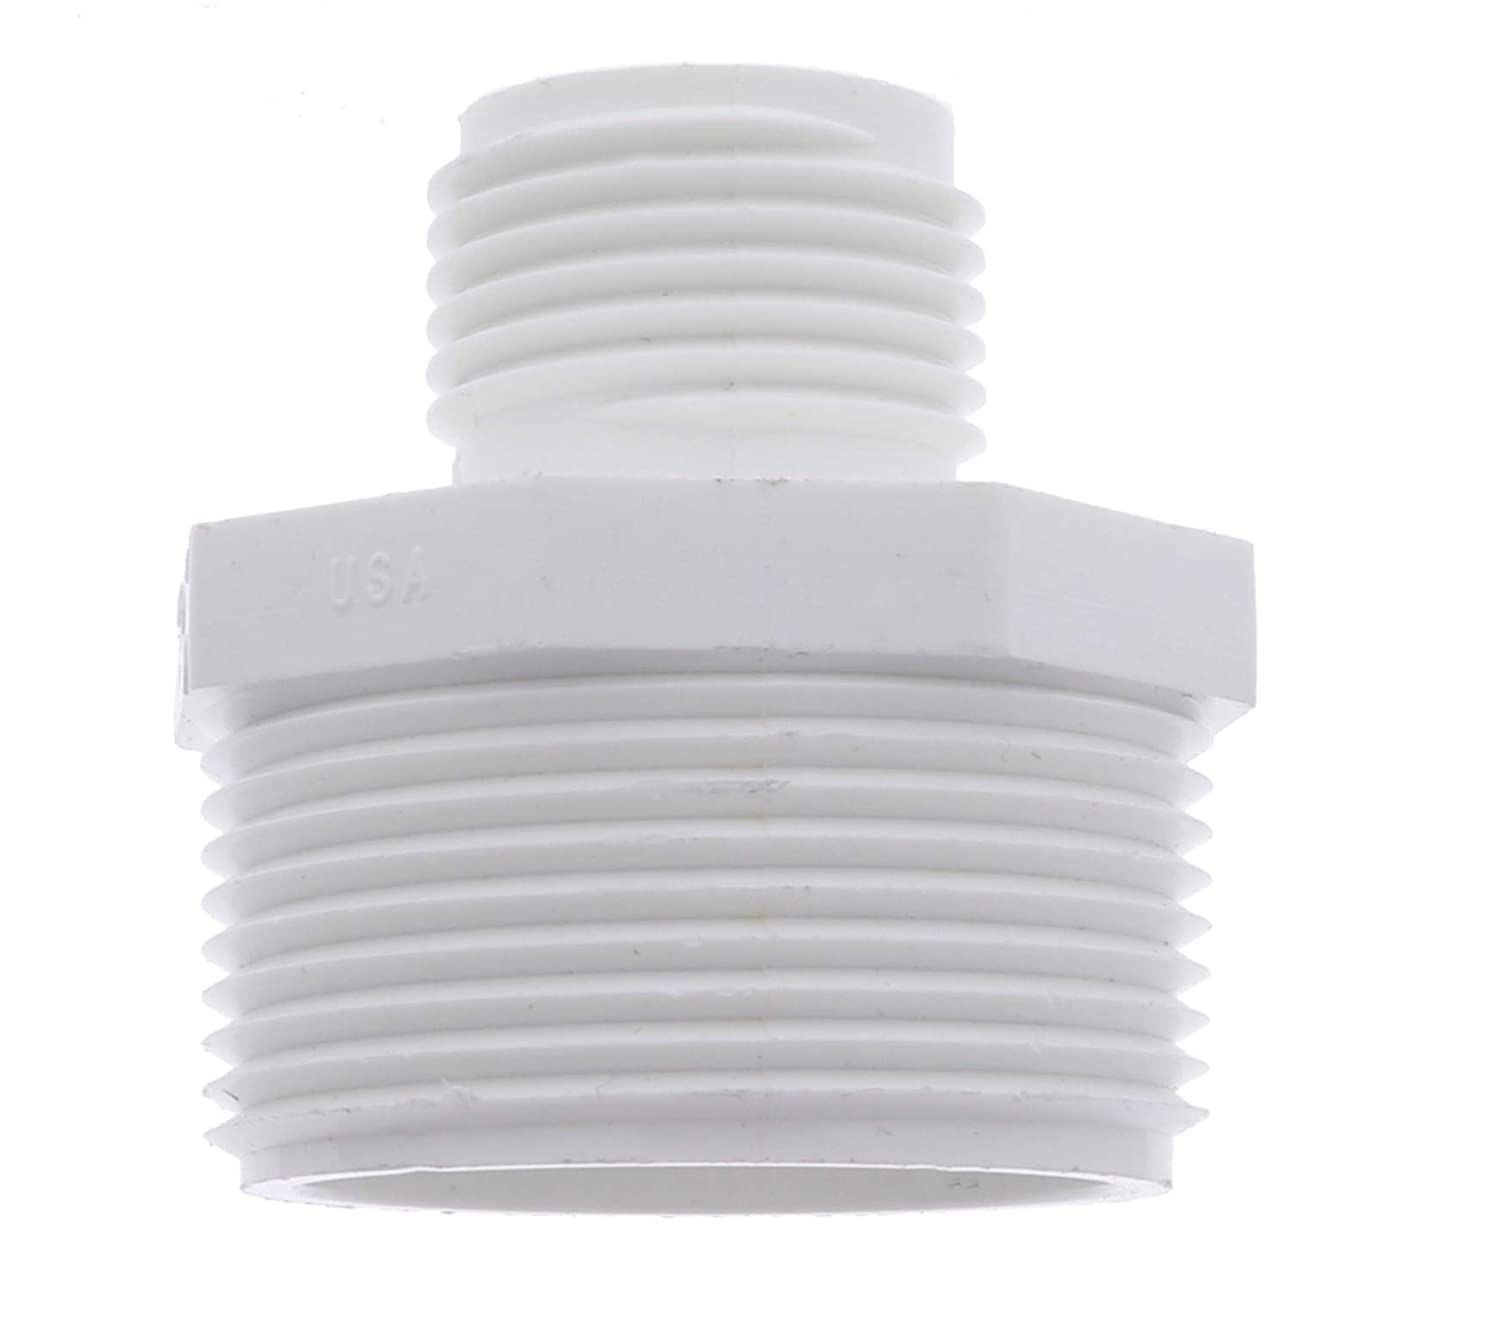 "Van Enterprises PVC Garden Hose Adapter (Male 1.25"" NPT x 3/4"" GHT) for Sump Pump. (Available 1.5"" and 1.25"" Adapters)"